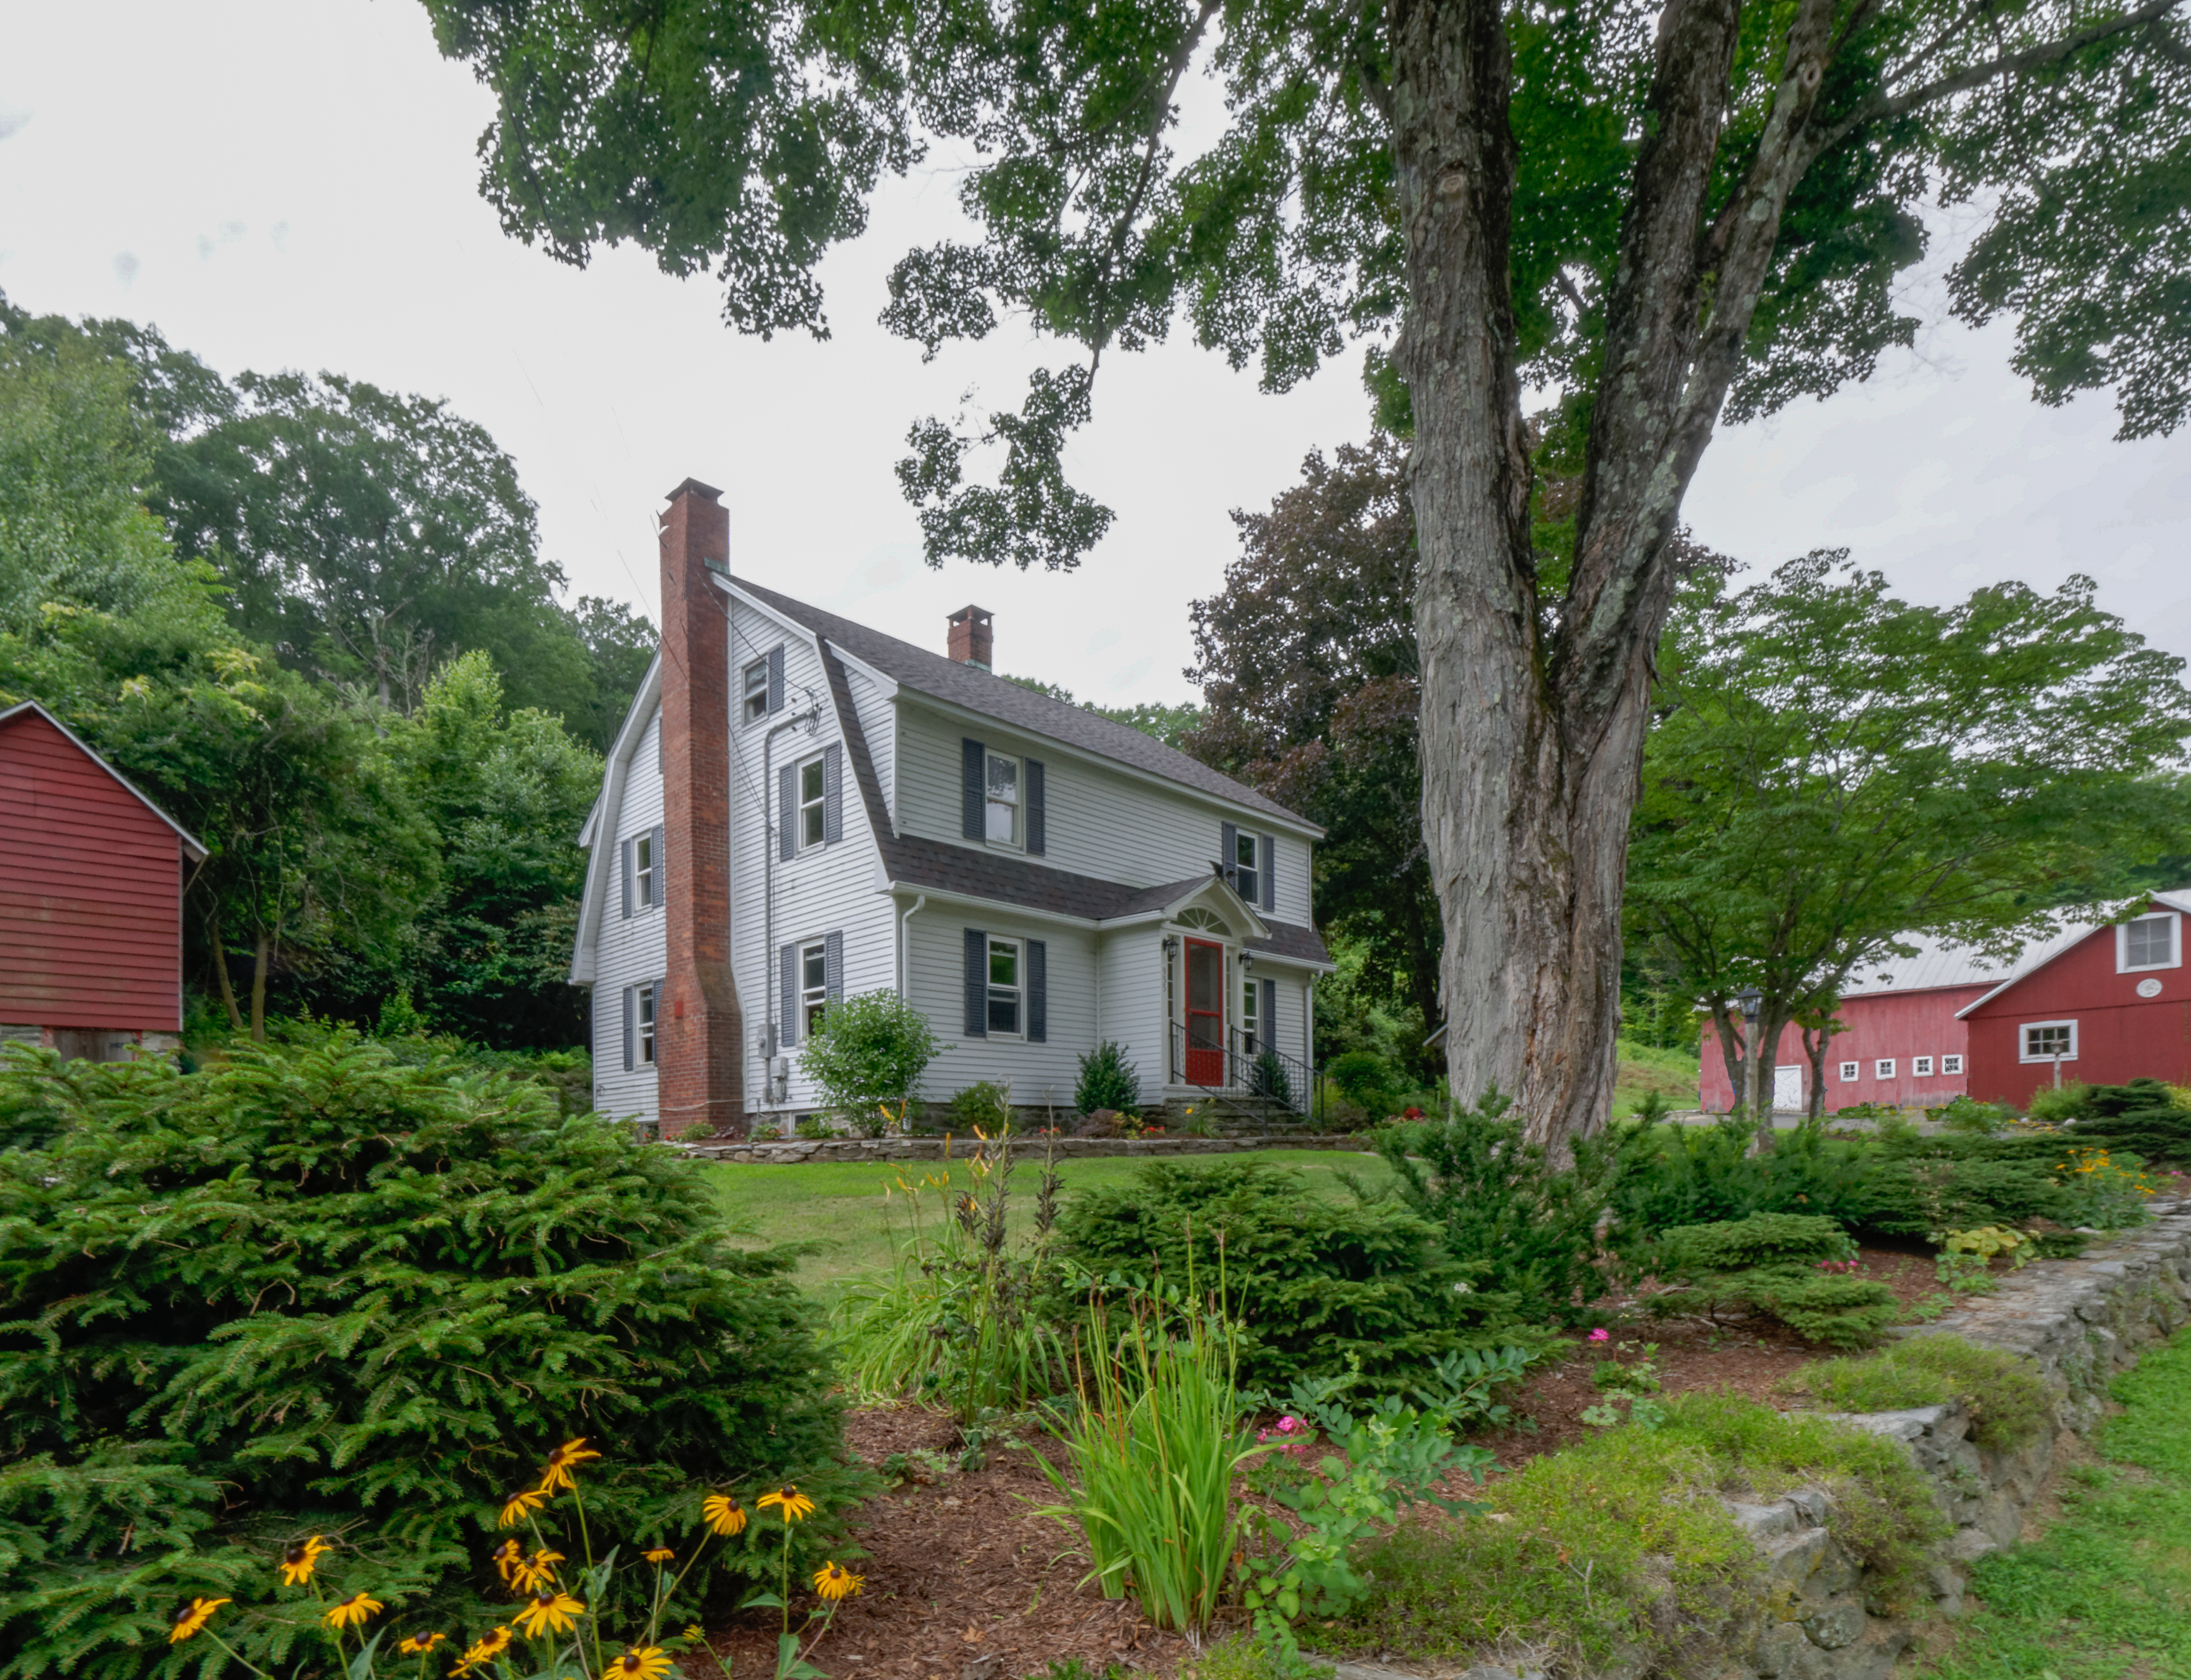 Single Family Home for Sale at Vintage Colonial with Significant Property 955 Washington Rd Woodbury, Connecticut, 06798 United States